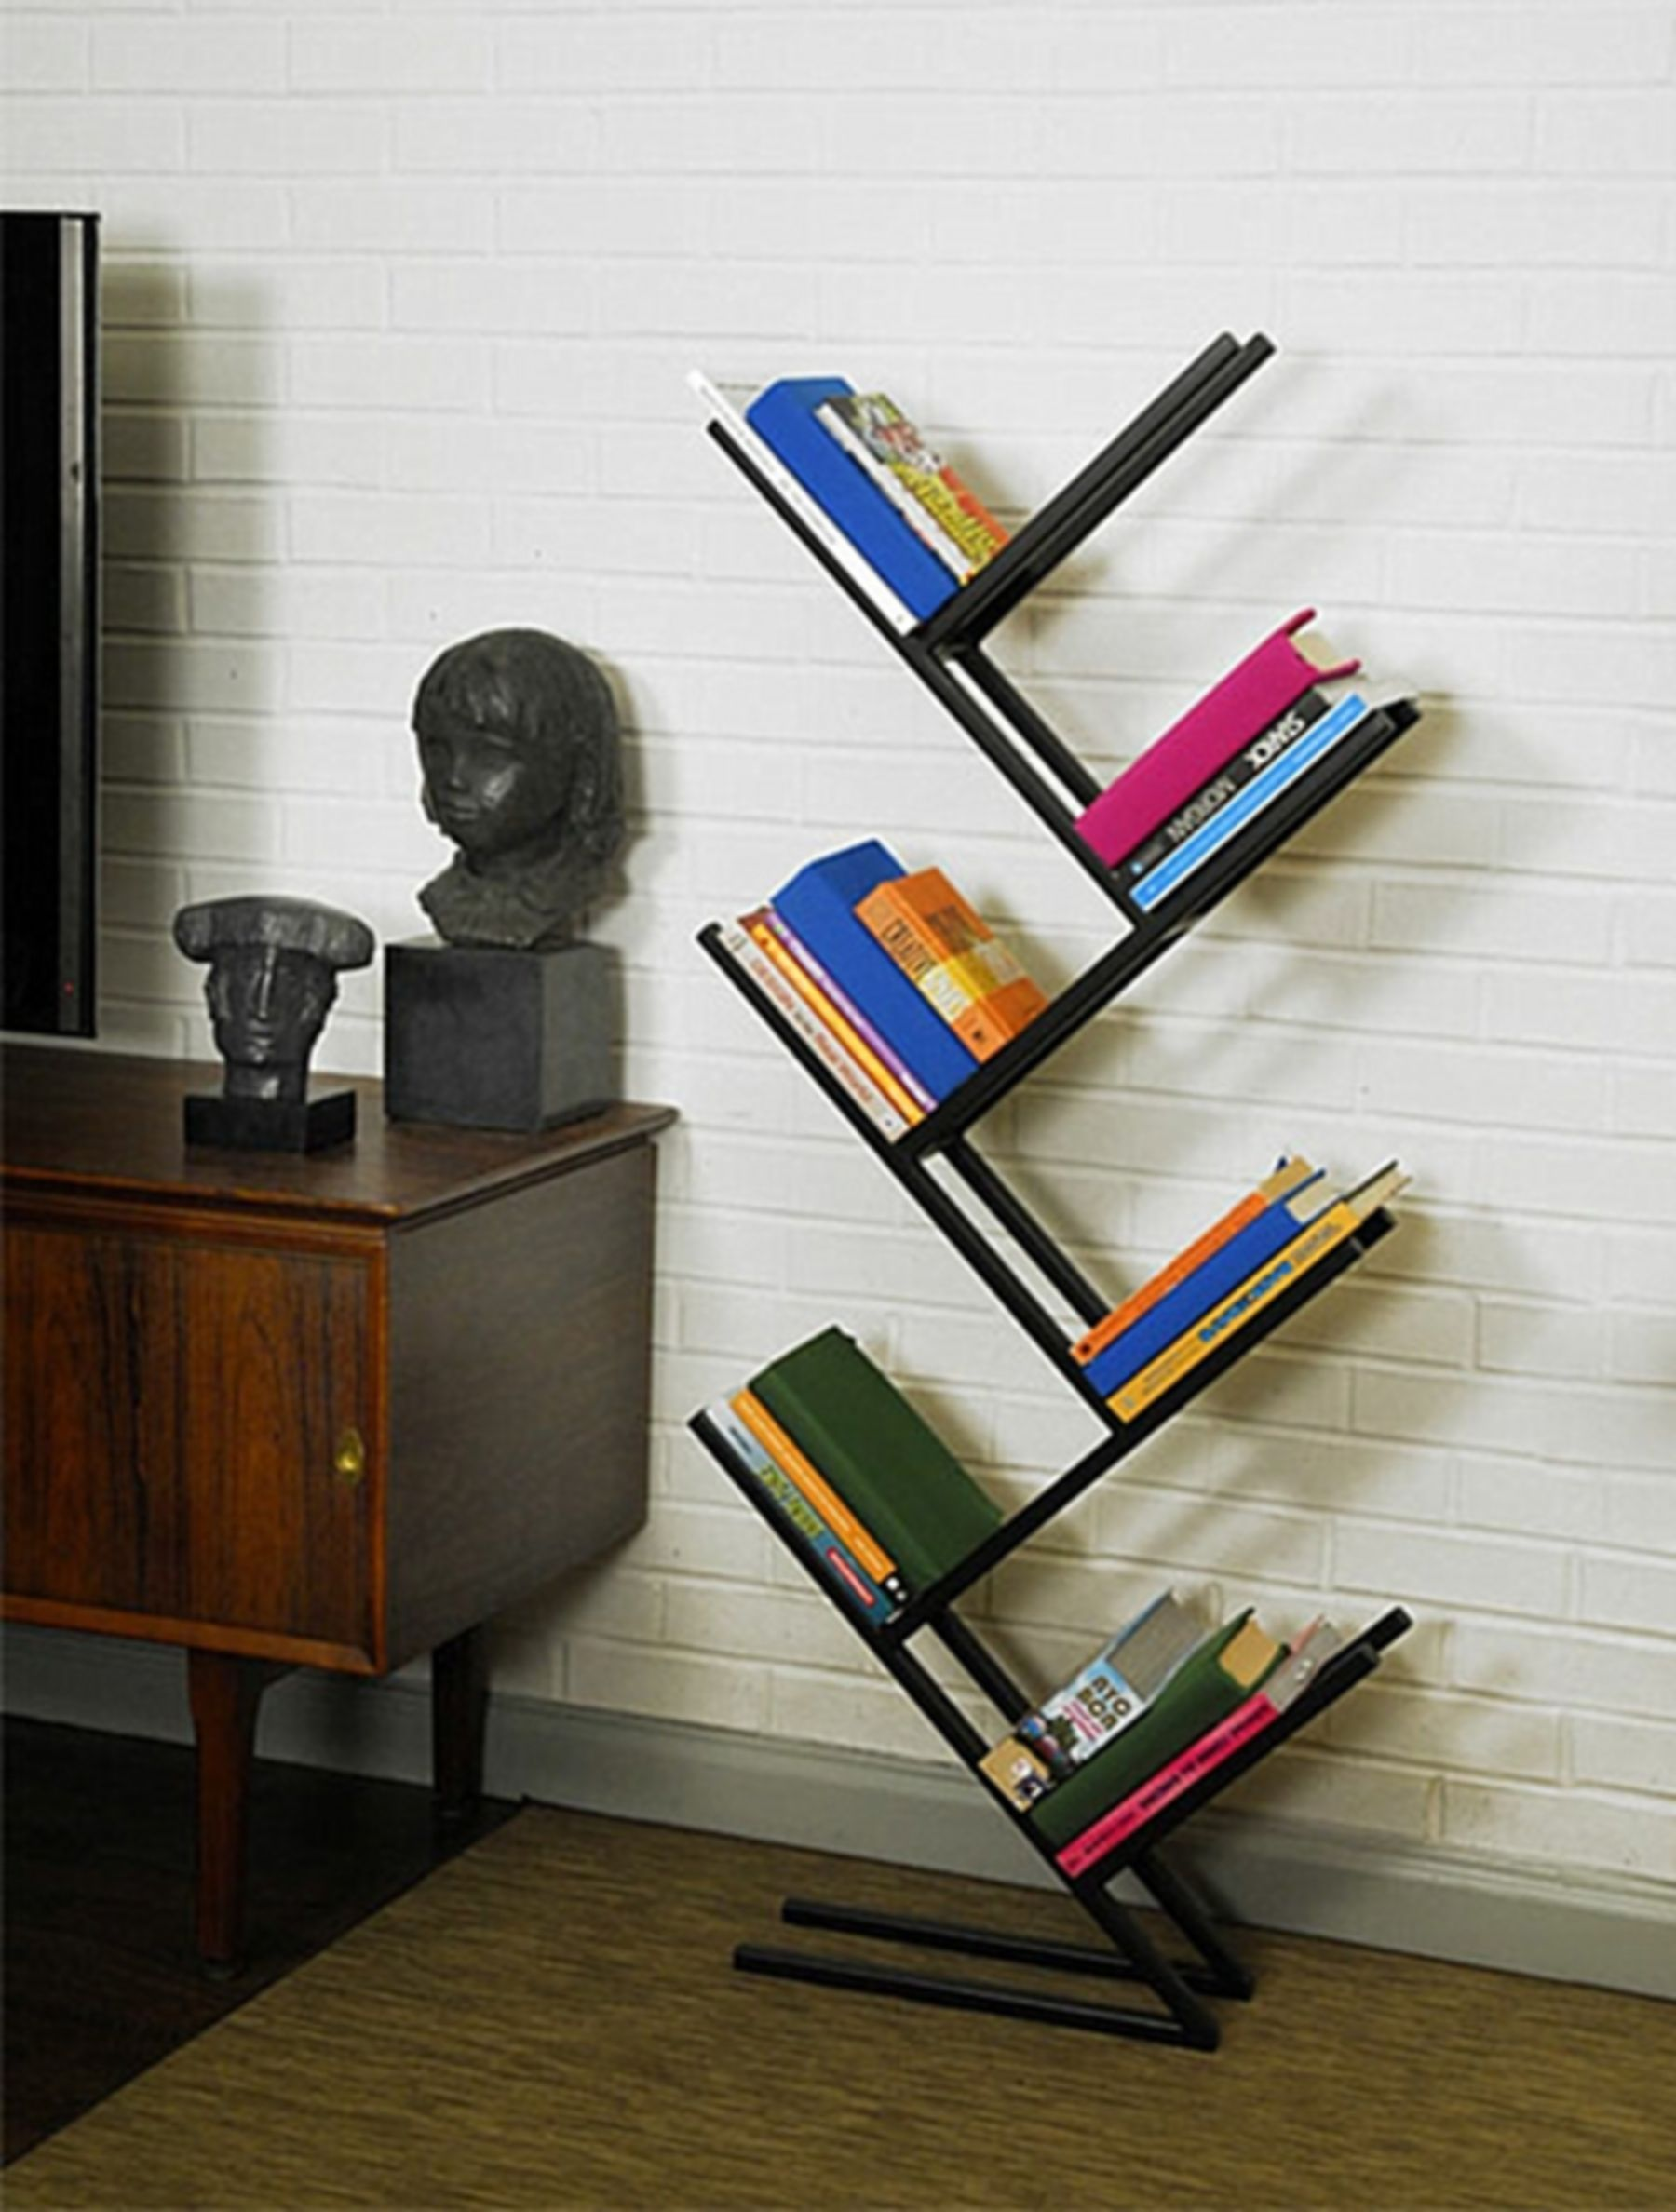 20 Easy And Cheap Bookshelf Design Ideas To Increase Your Home